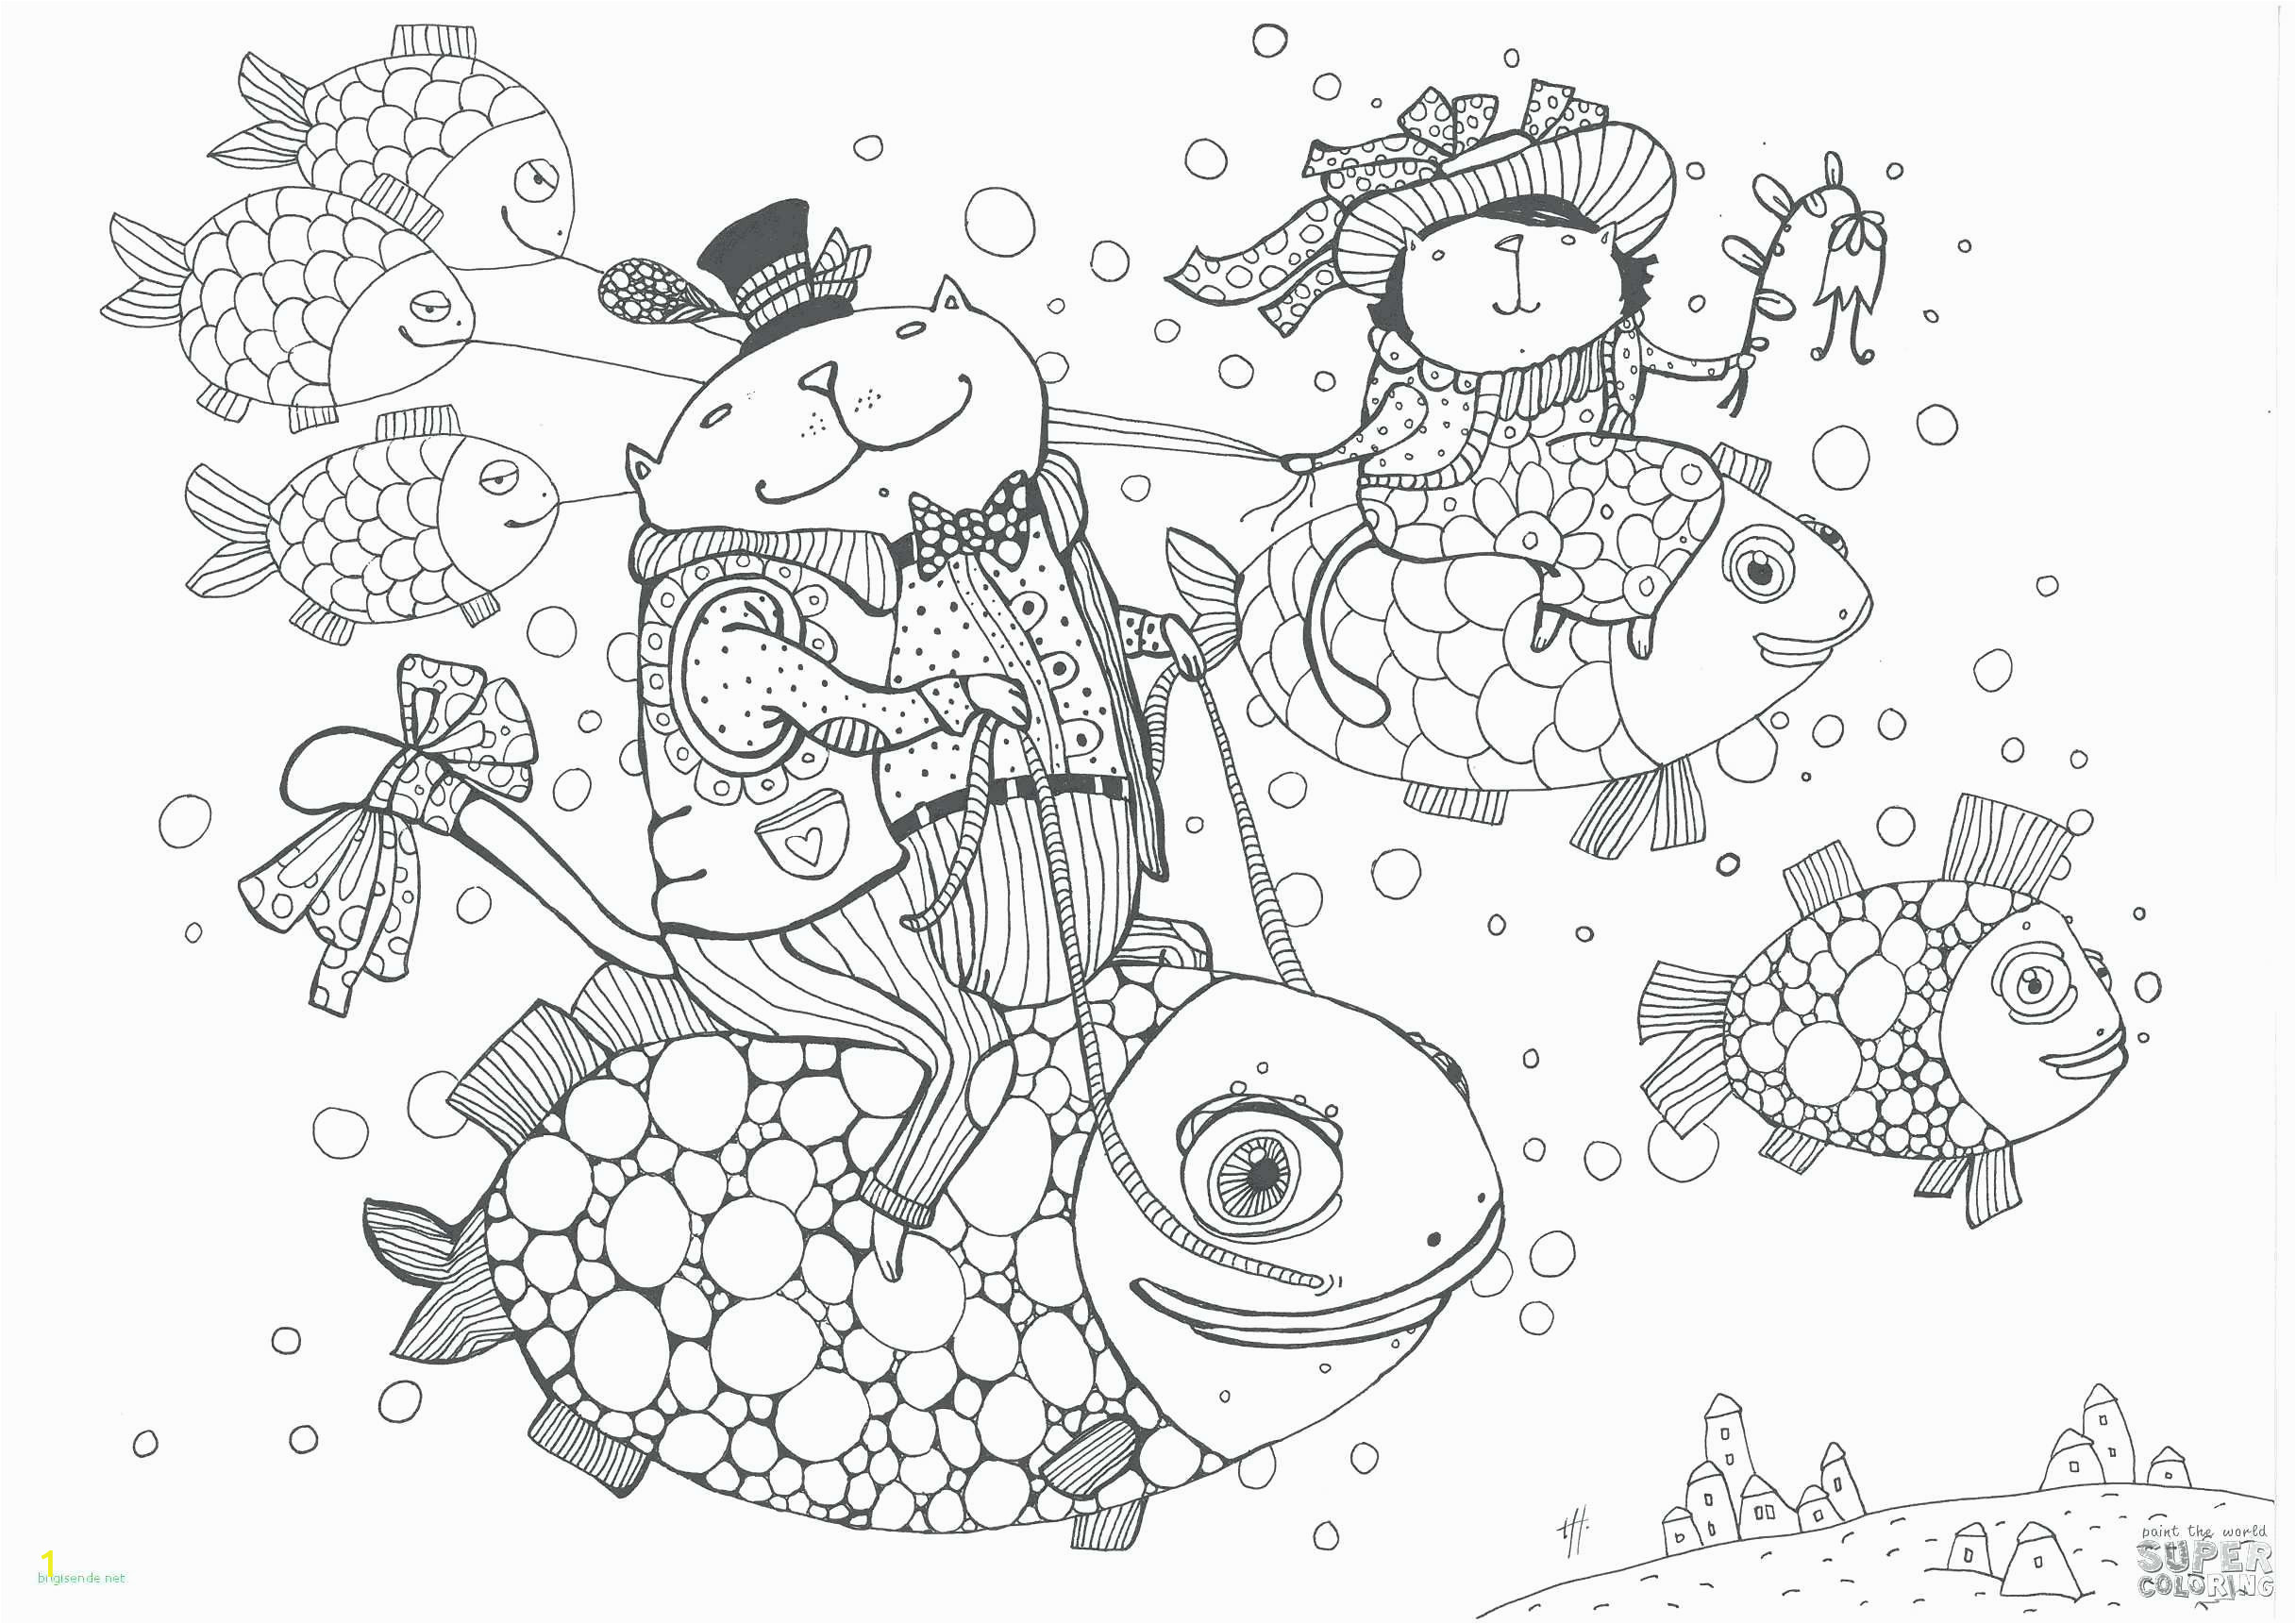 jellyfish coloring page new fresh free printable pages for girls princesses games cute sheets marchpaper co colouring in pictures adults zentangle outline adorable book